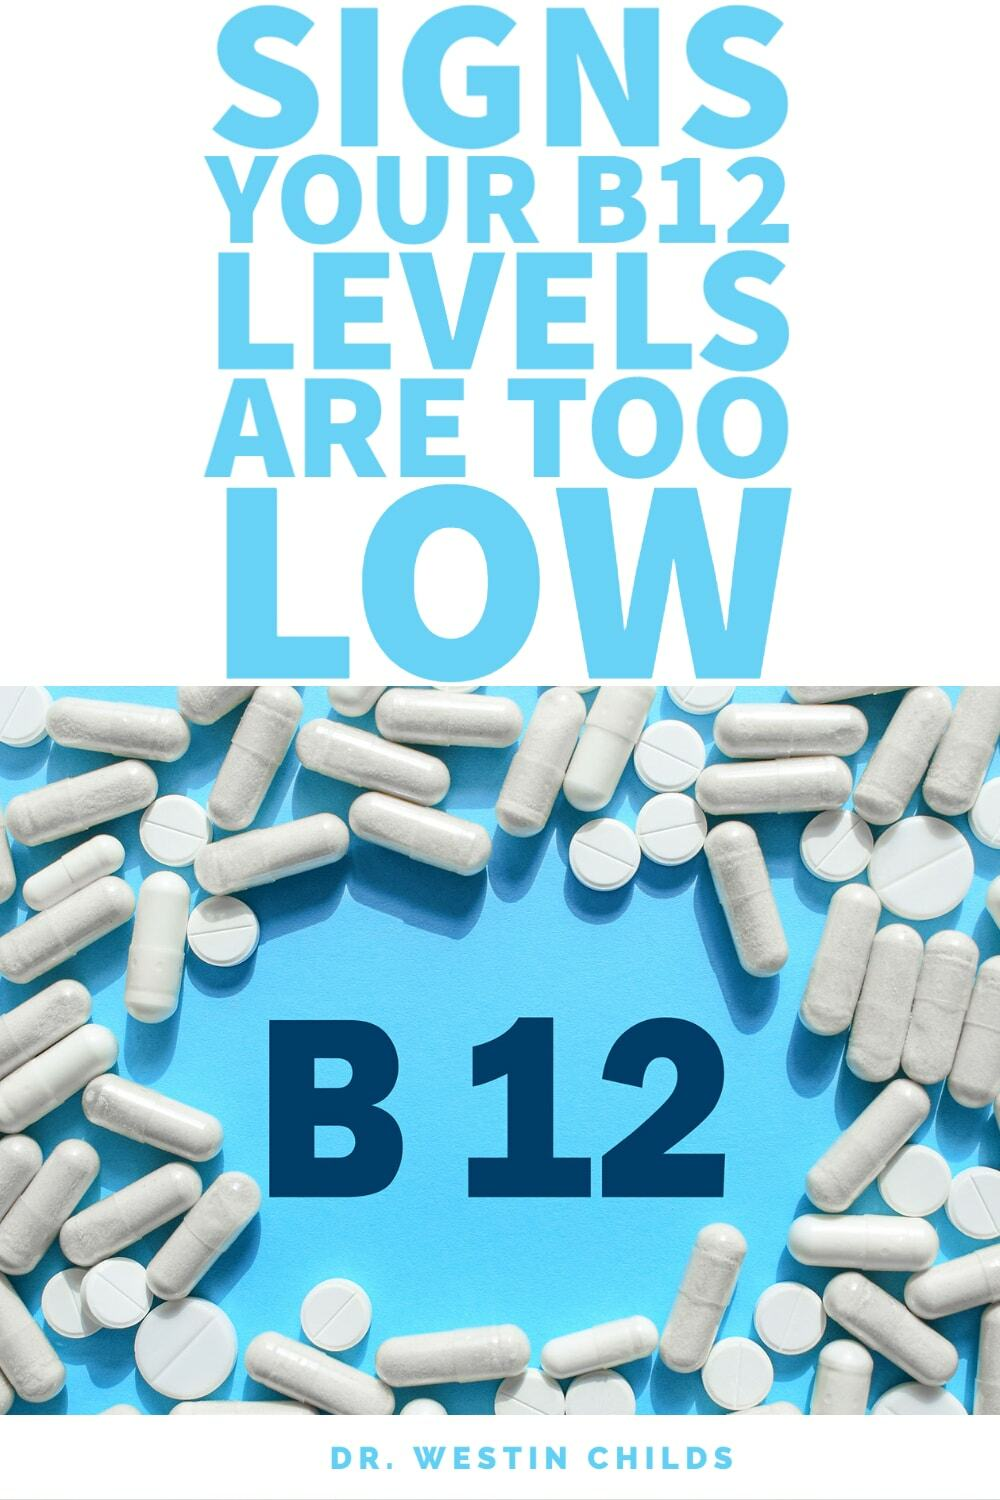 signs your b12 levels are too low